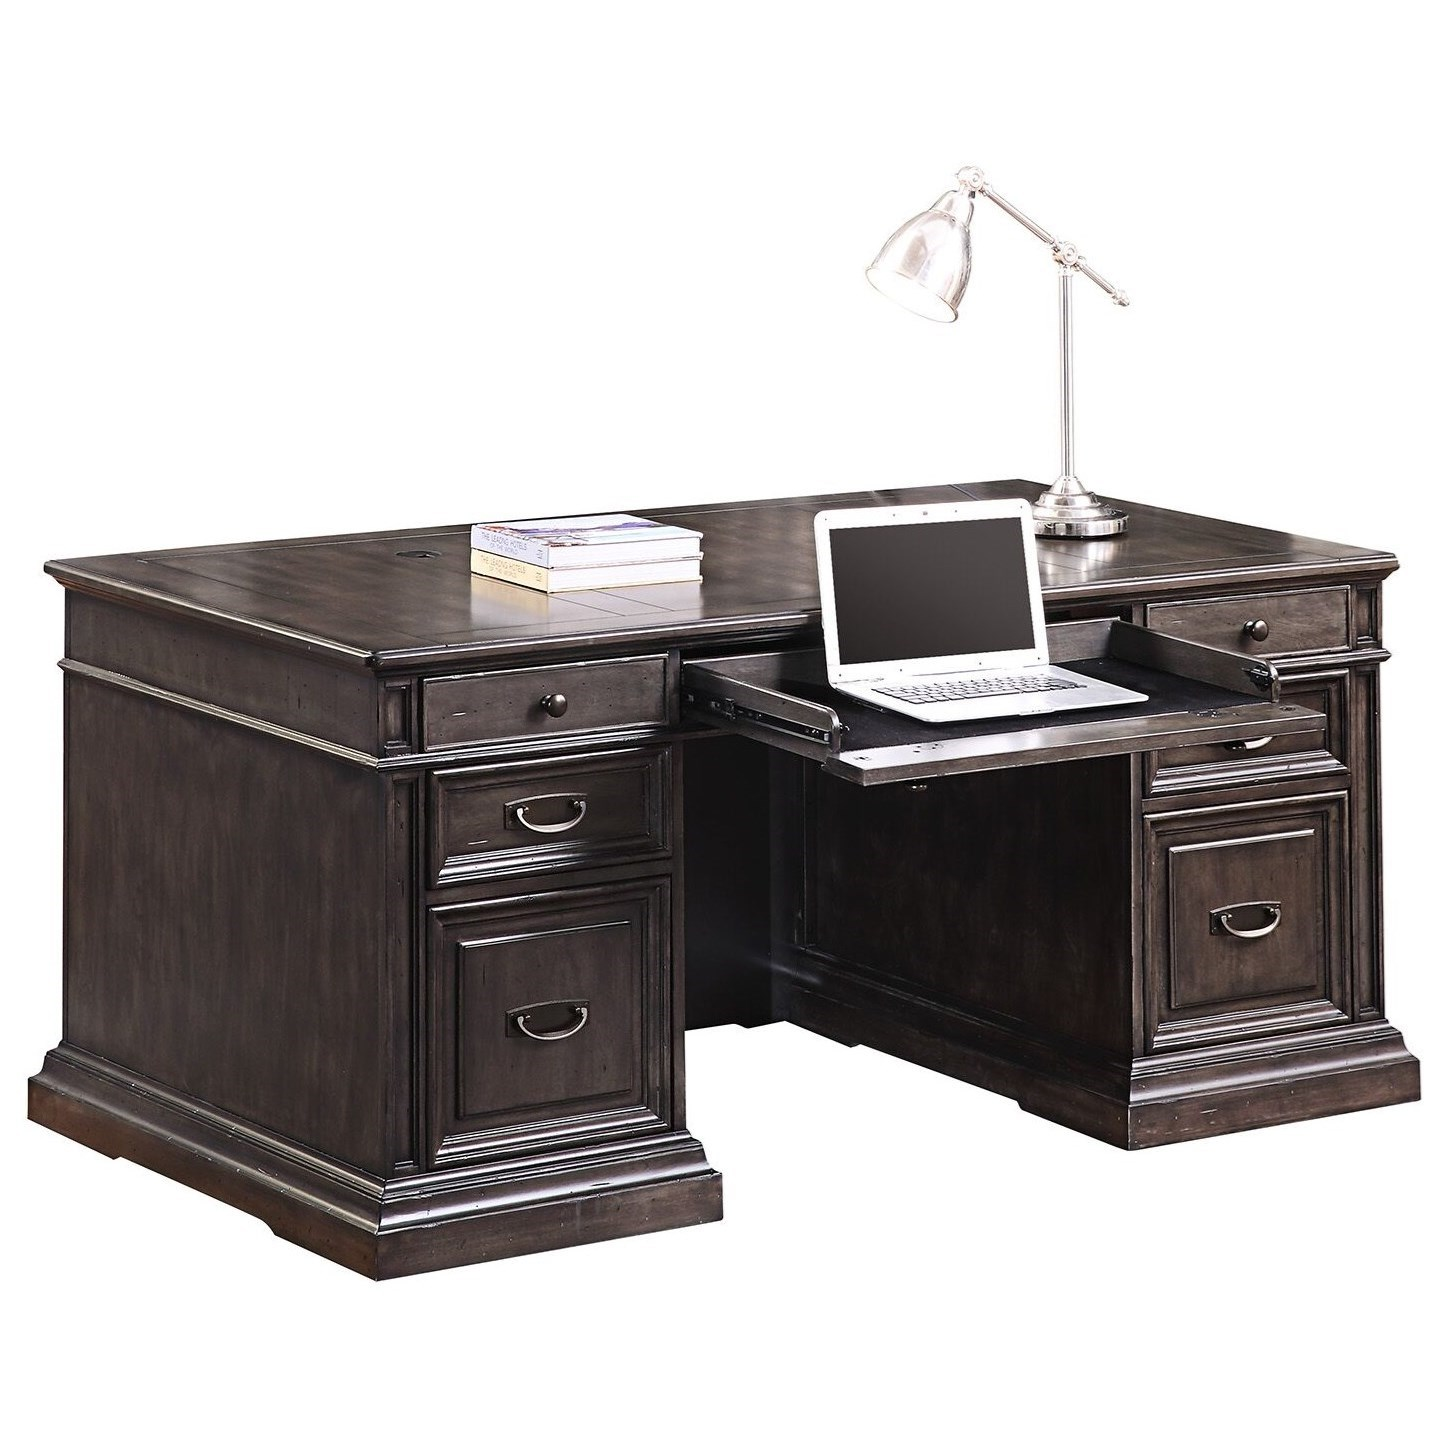 Washington Heights Double Pedestal Executive Desk by Parker House at Westrich Furniture & Appliances